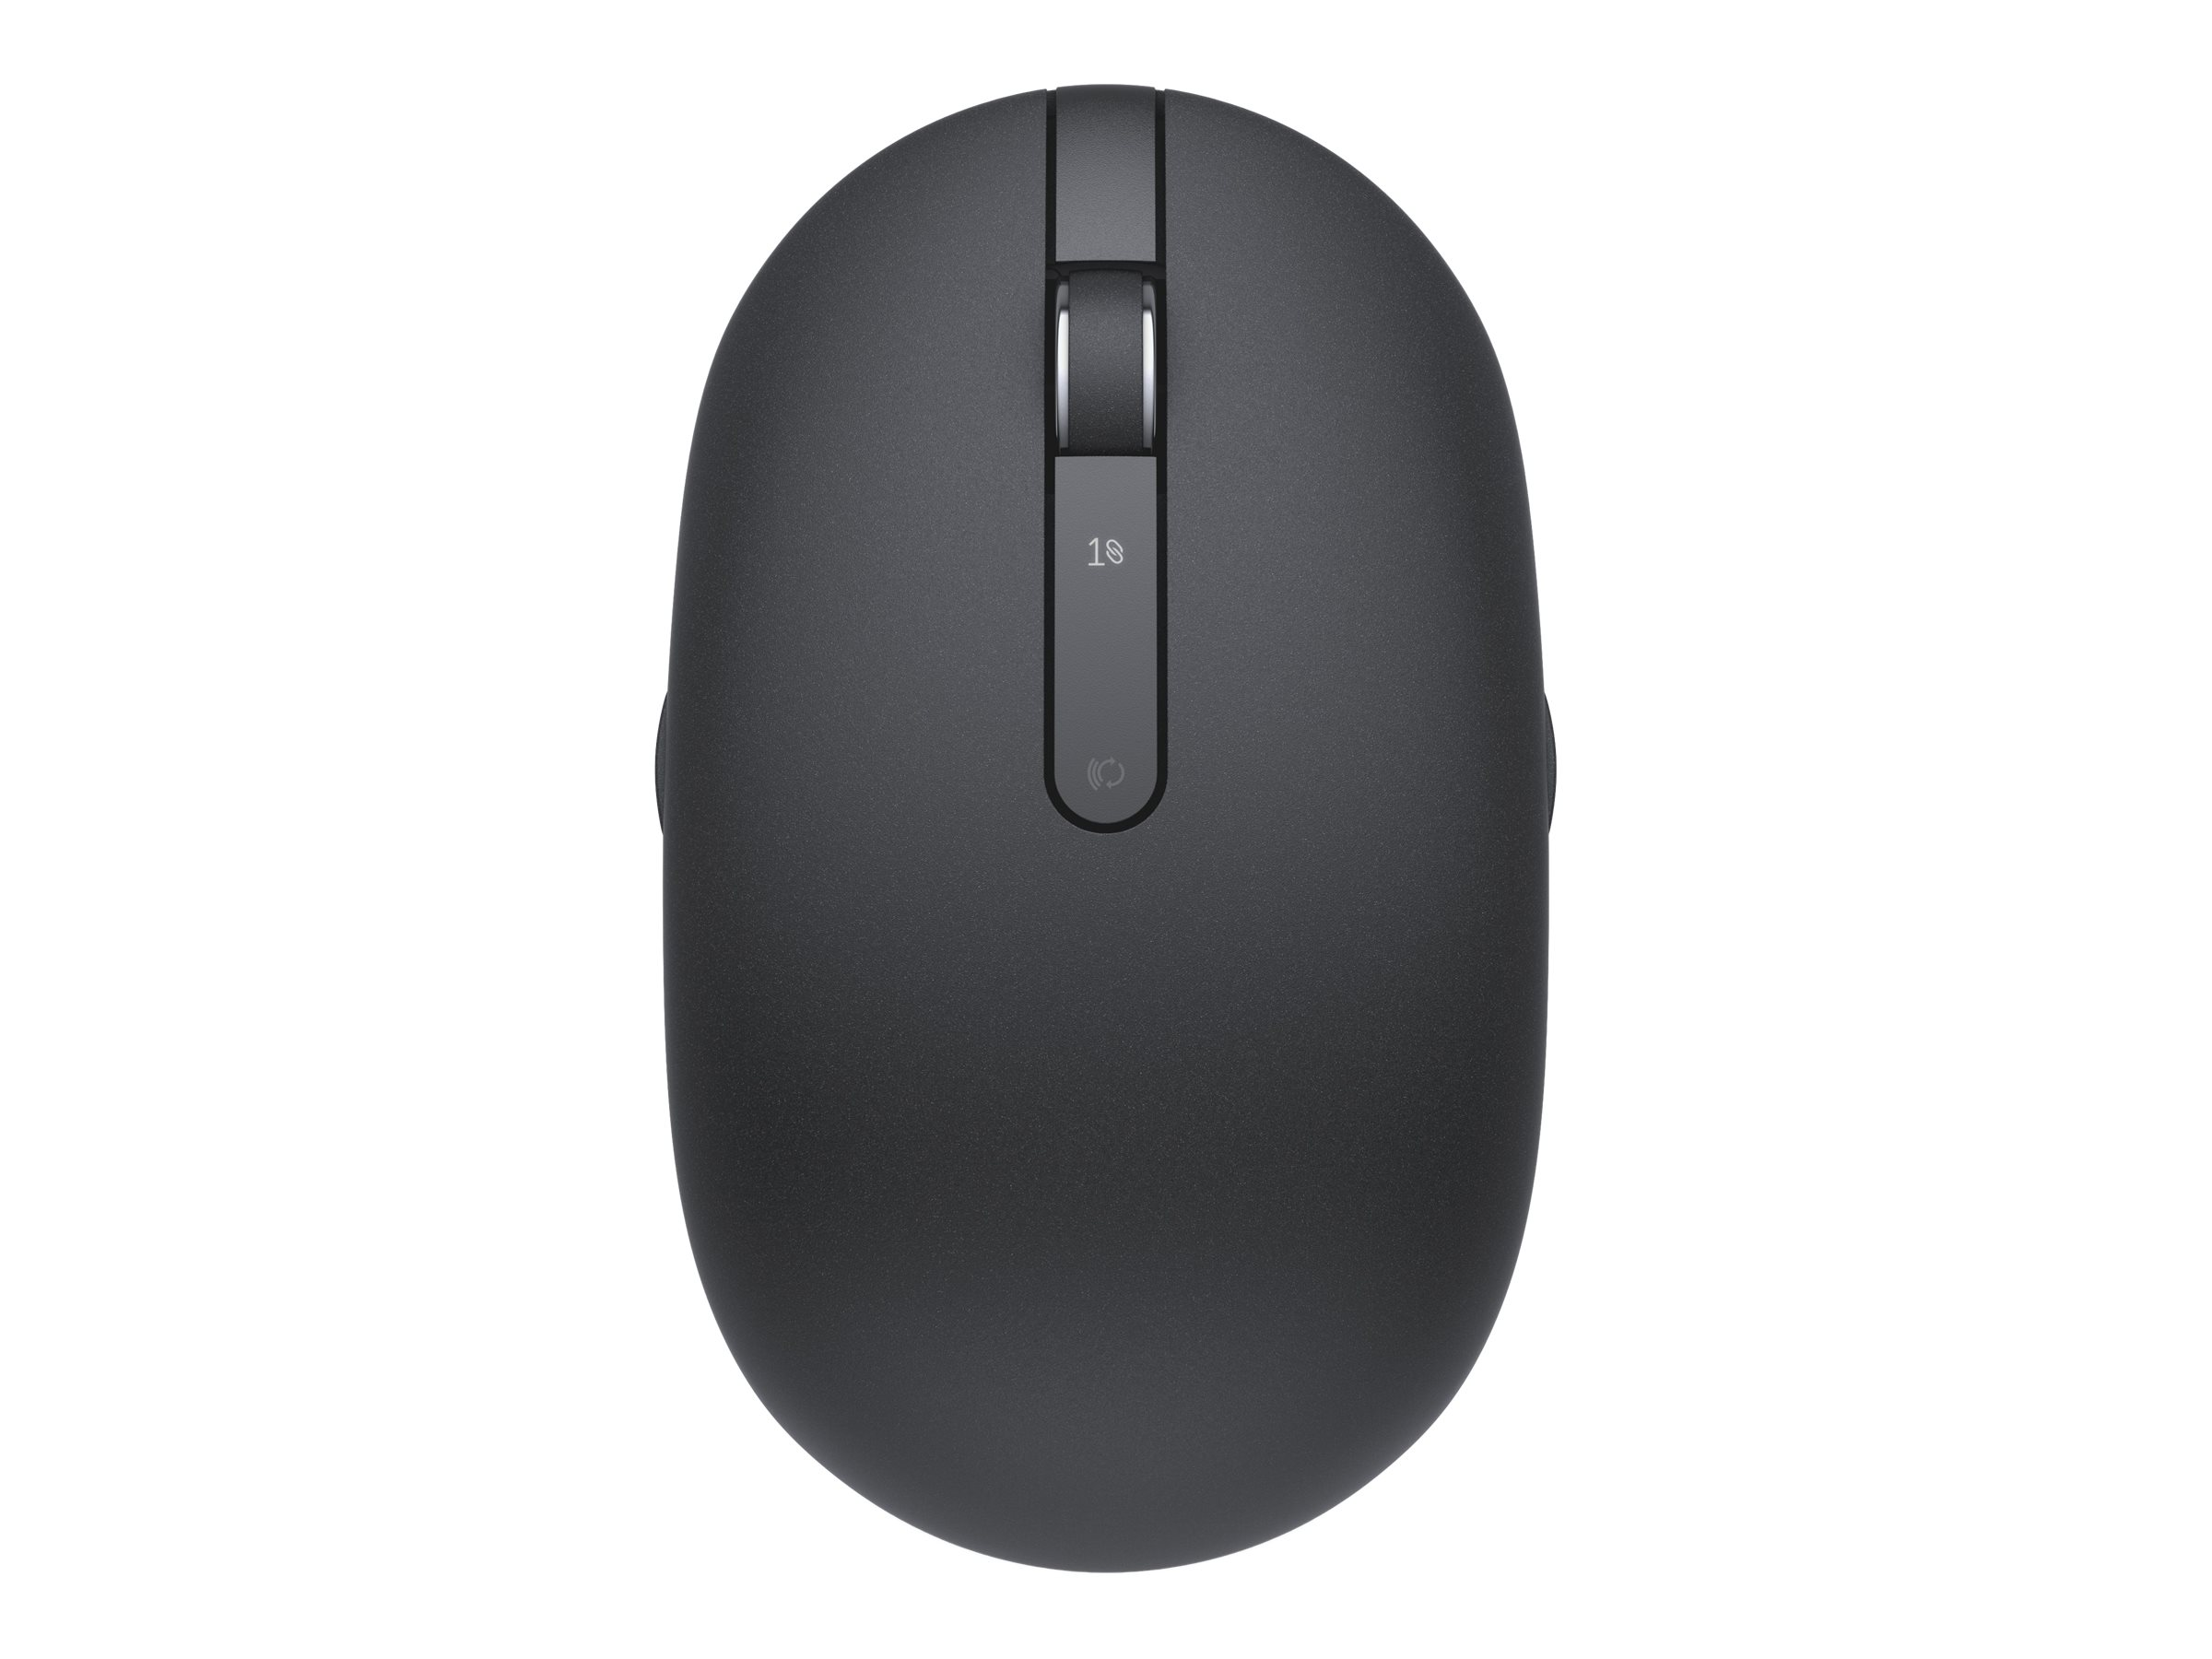 Dell Premier WM527 - mouse - Bluetooth, 2.4 GHz - black